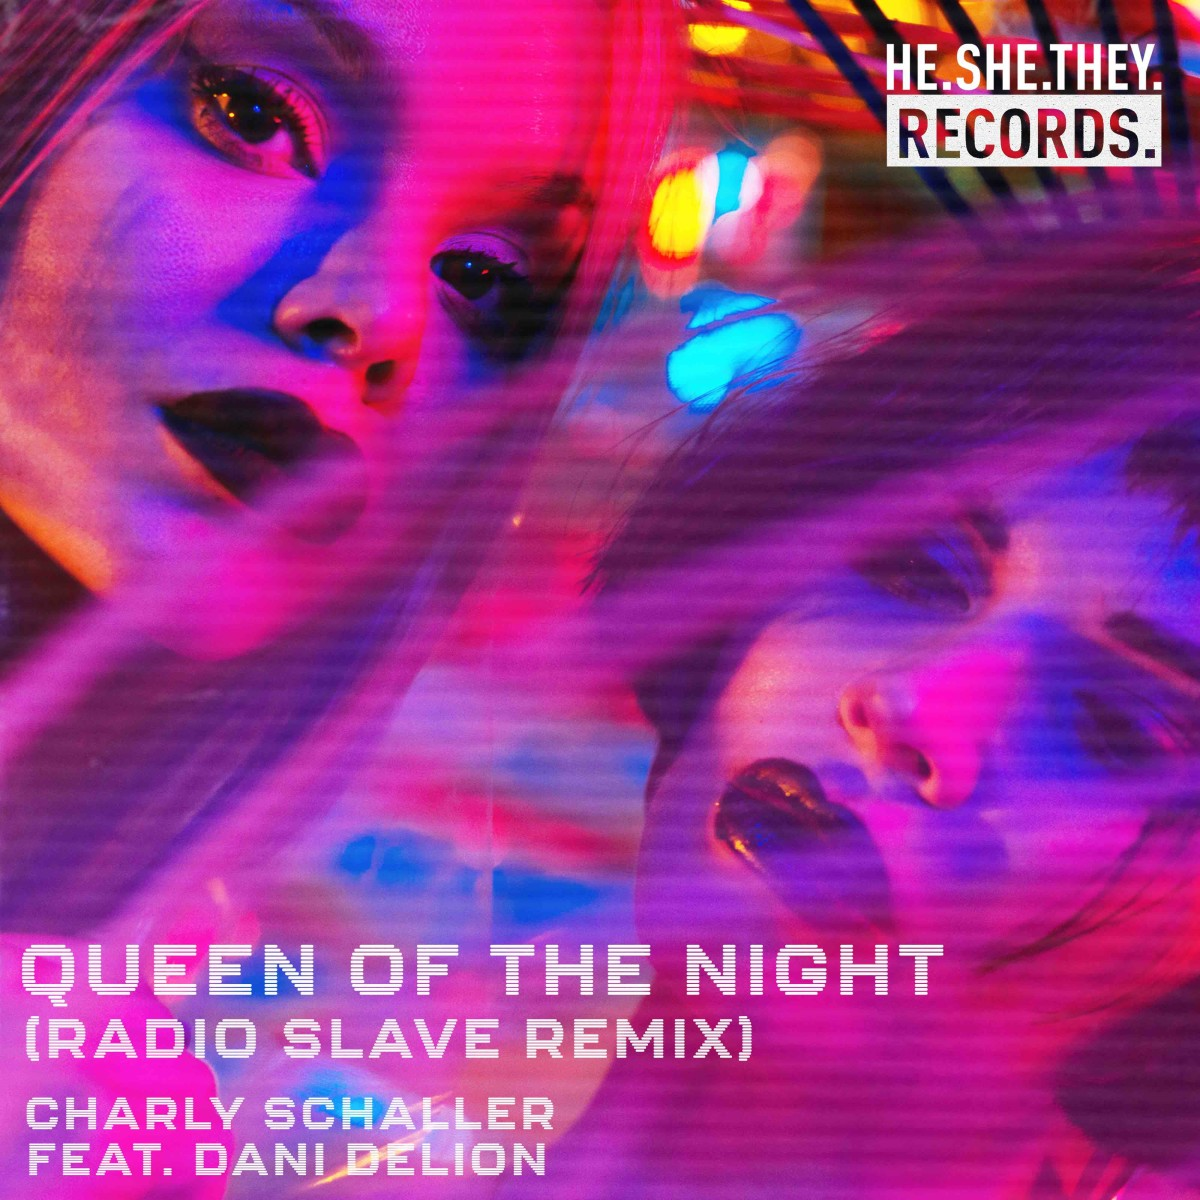 Charly Schaller - Queen Of The Night (Radio Slave Remix) [HE.SHE.THEY.]